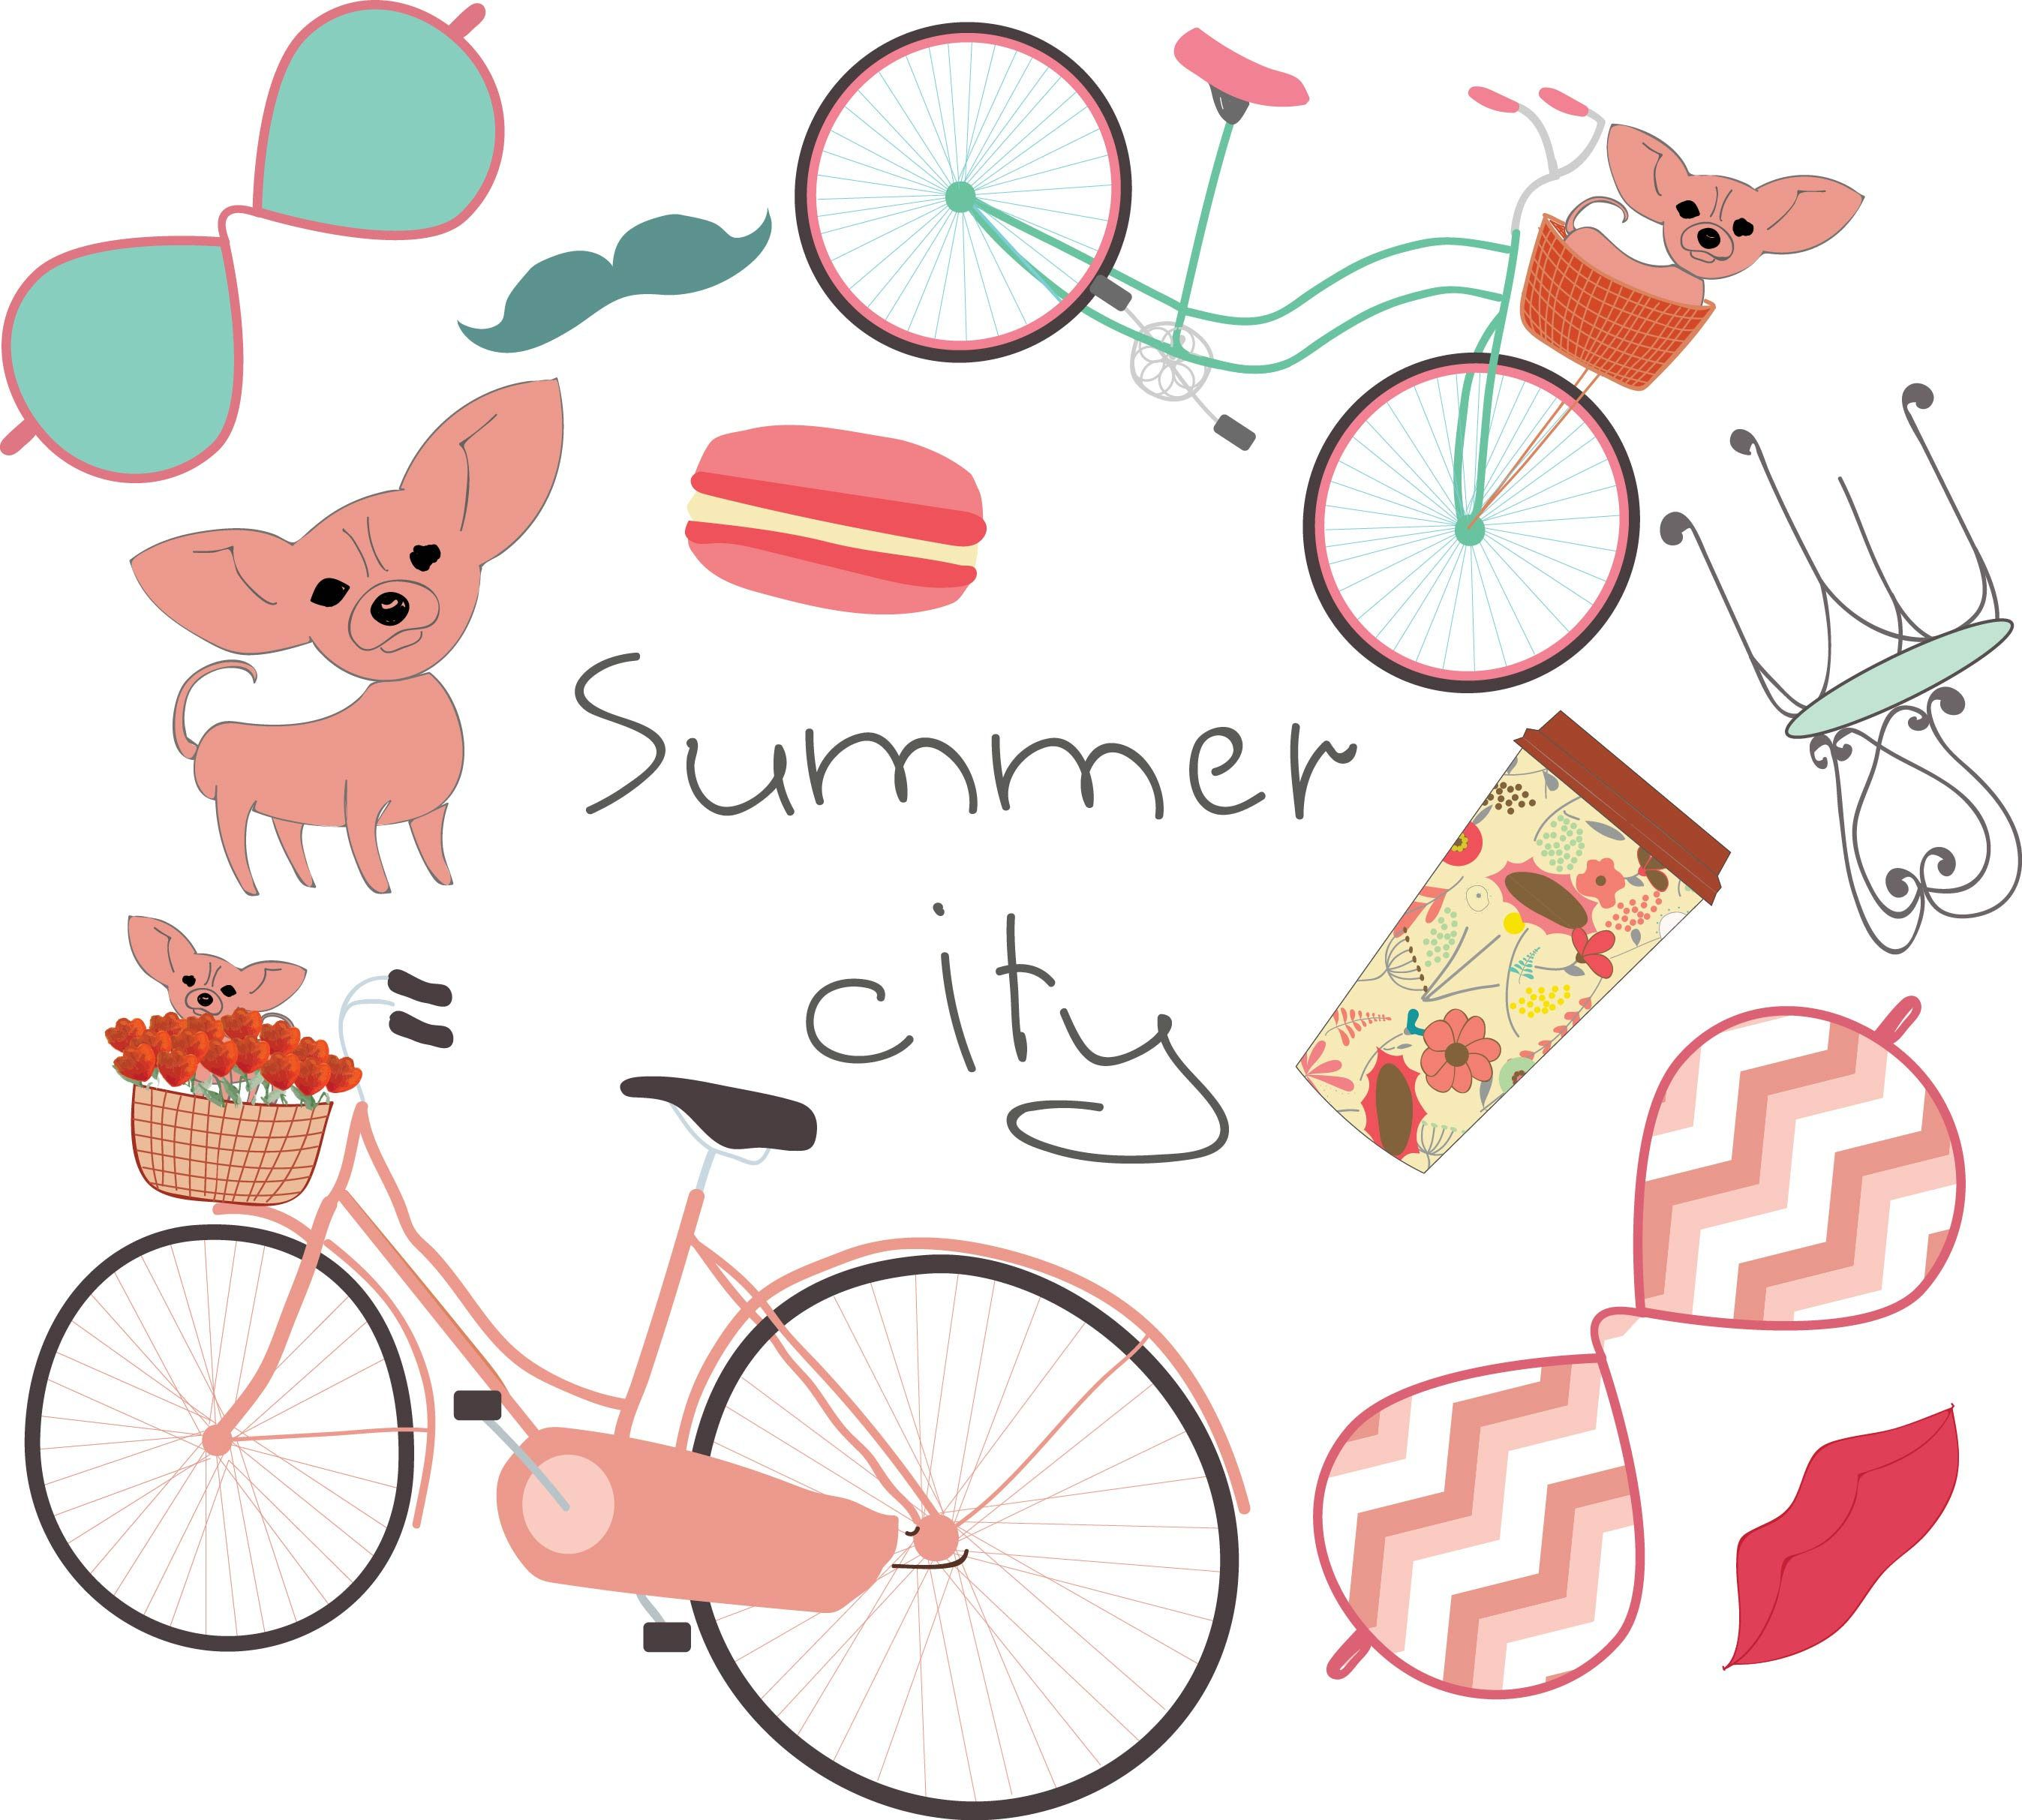 Summer city clipart png digital download planner stickers coffee chihuahua bicycle goggles instant clipart instant download